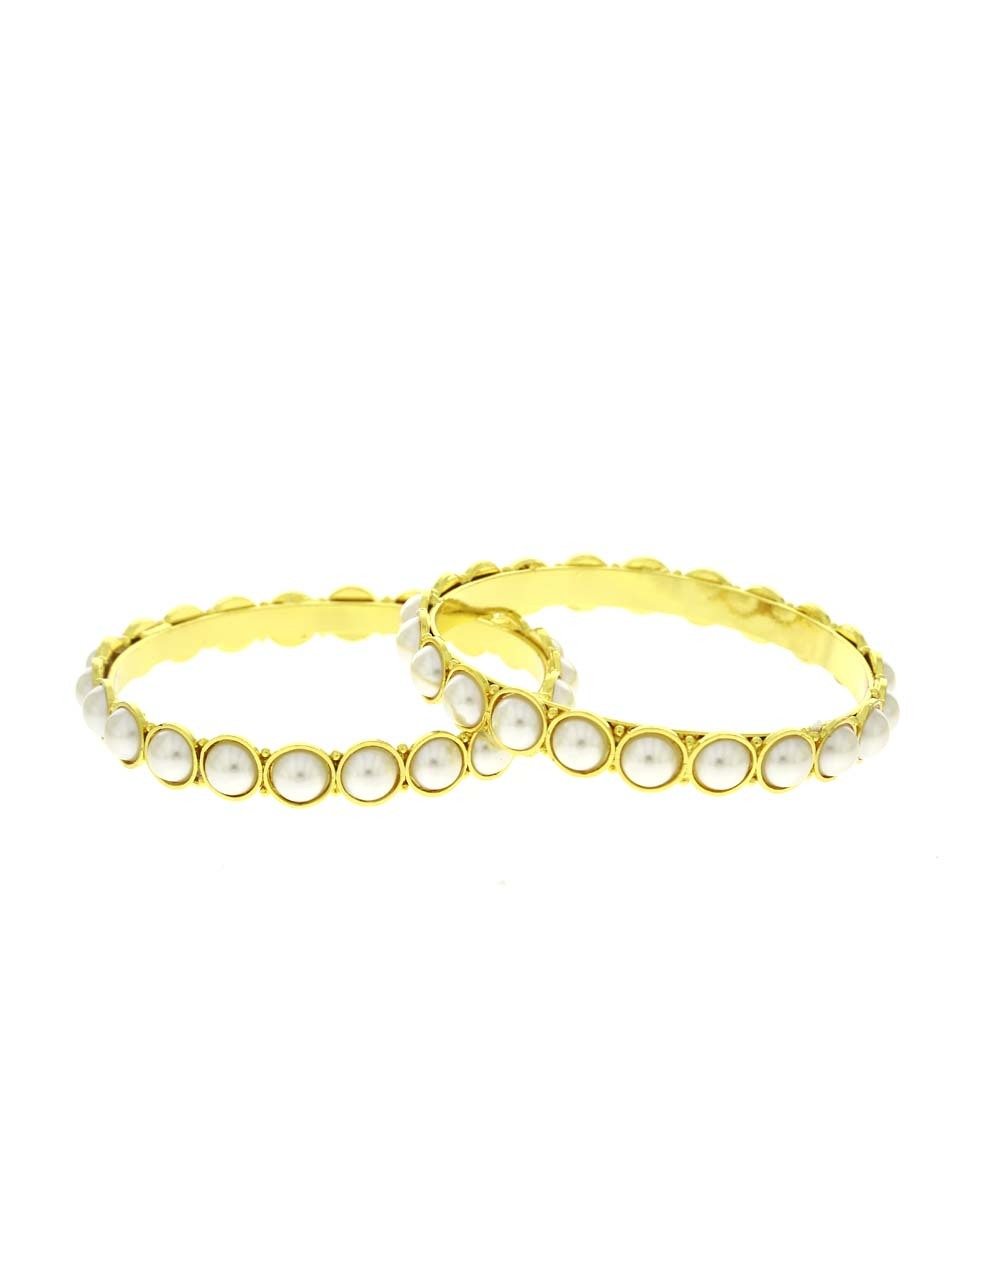 Gold Tone Adorable Styled With Beads Trendy Bangles Set For Women